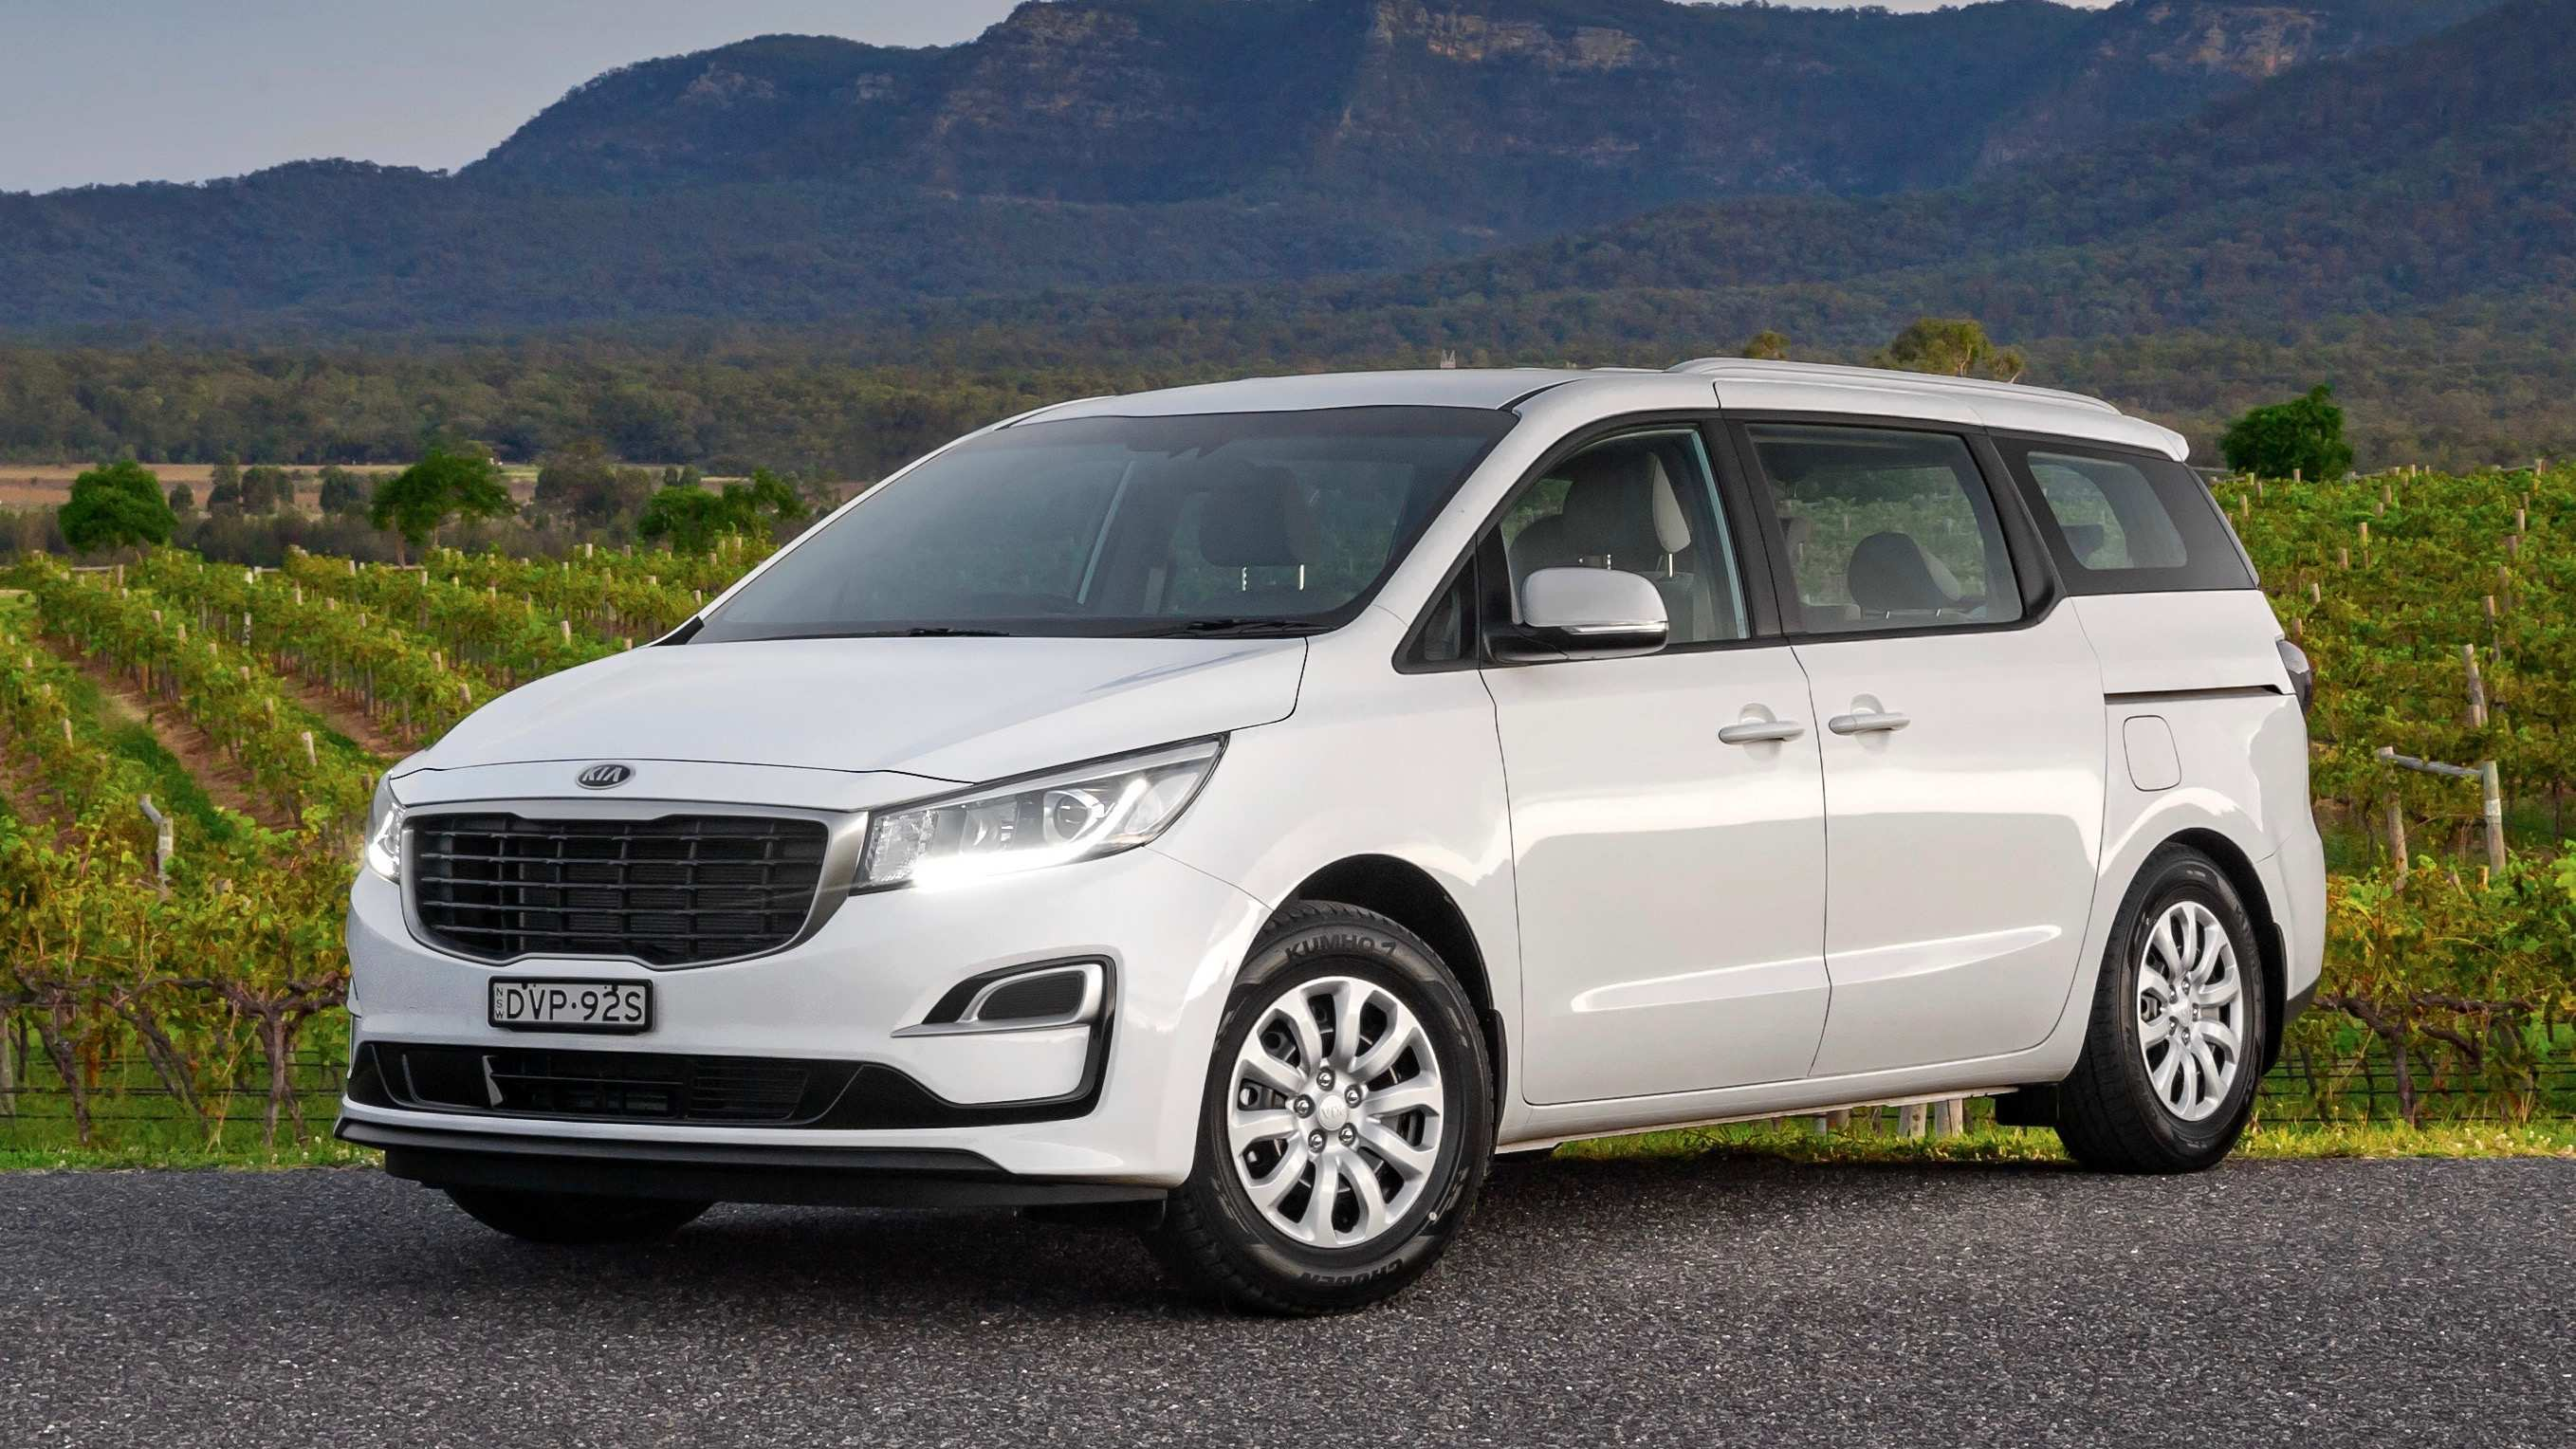 90 The Best 2019 Kia Carnival Prices